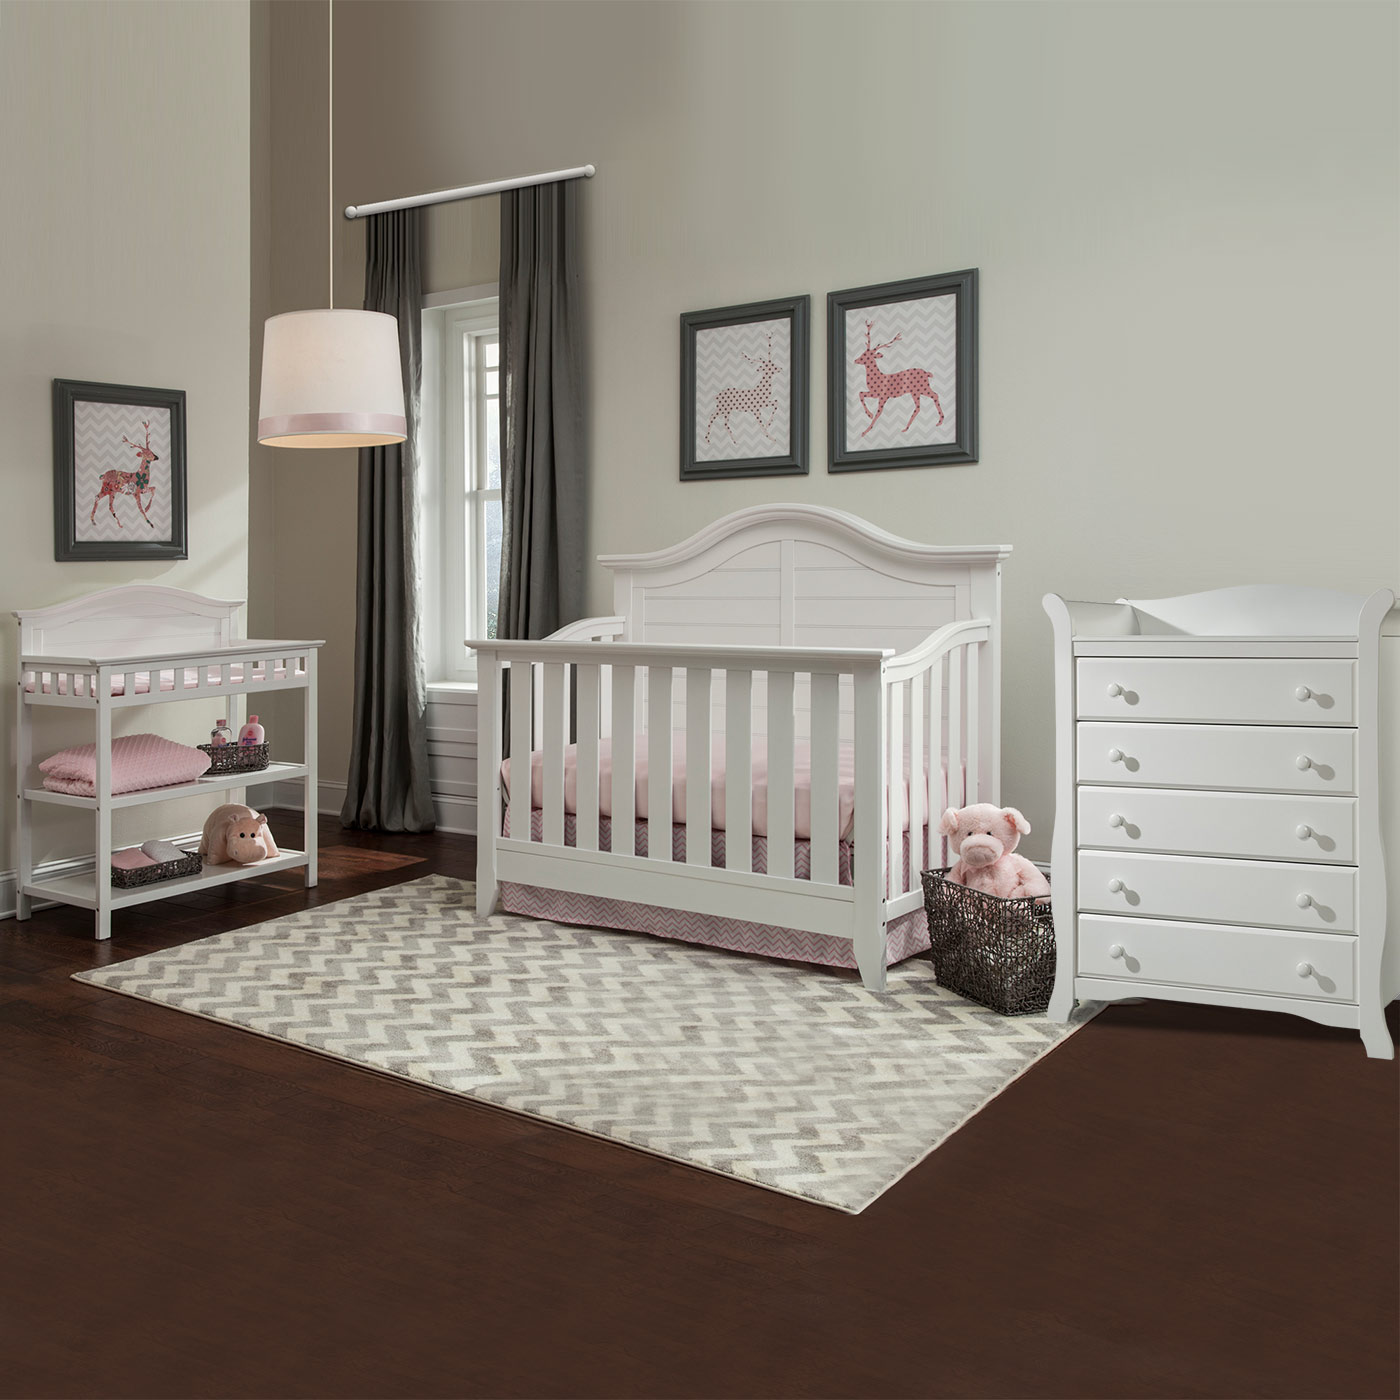 Thomasville 3 Piece Nursery Set   Southern Dunes Lifestyle Crib, Dressing  Table And Avalon 5 Drawer Dresser In White FREE SHIPPING